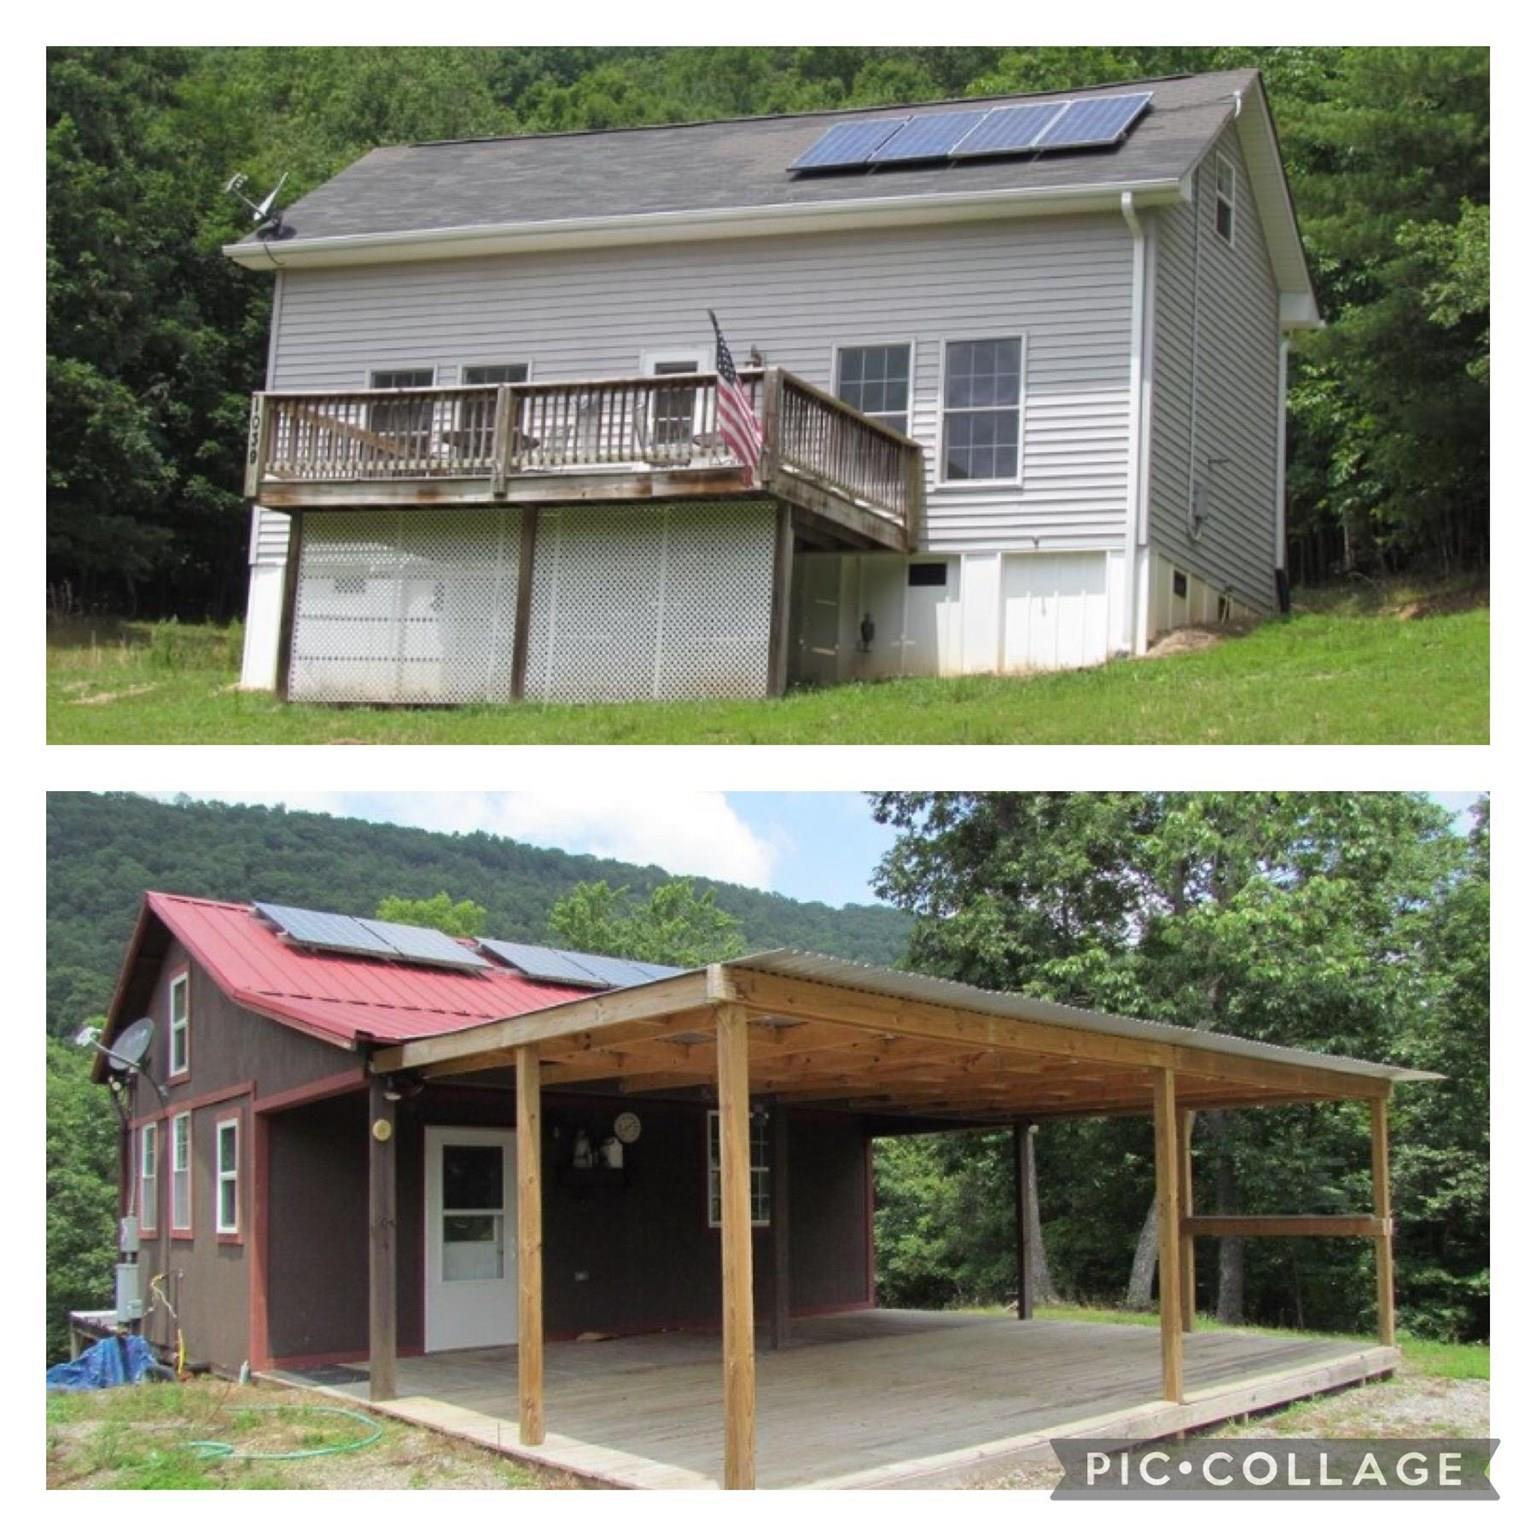 """Are you looking for a great place to unwind, hunt, hike & enjoy being off the grid? Then look no further! This 91 acre tract includes 2 """"off the grid"""" homes that have an artesian well, solar power,propane & generator. One home is approximately 1000 sq/ft & the other is roughly 500 sq/ft. This would be perfect for a hunting property or weekend getaway. There are trails throughout the property & wildlife abound.  Sellers believe one home was built in 2009 & the other 2012. The homes are being sold as is - everything conveys.  It's peaceful, it's private & it can be yours. Schedule your showing today!"""